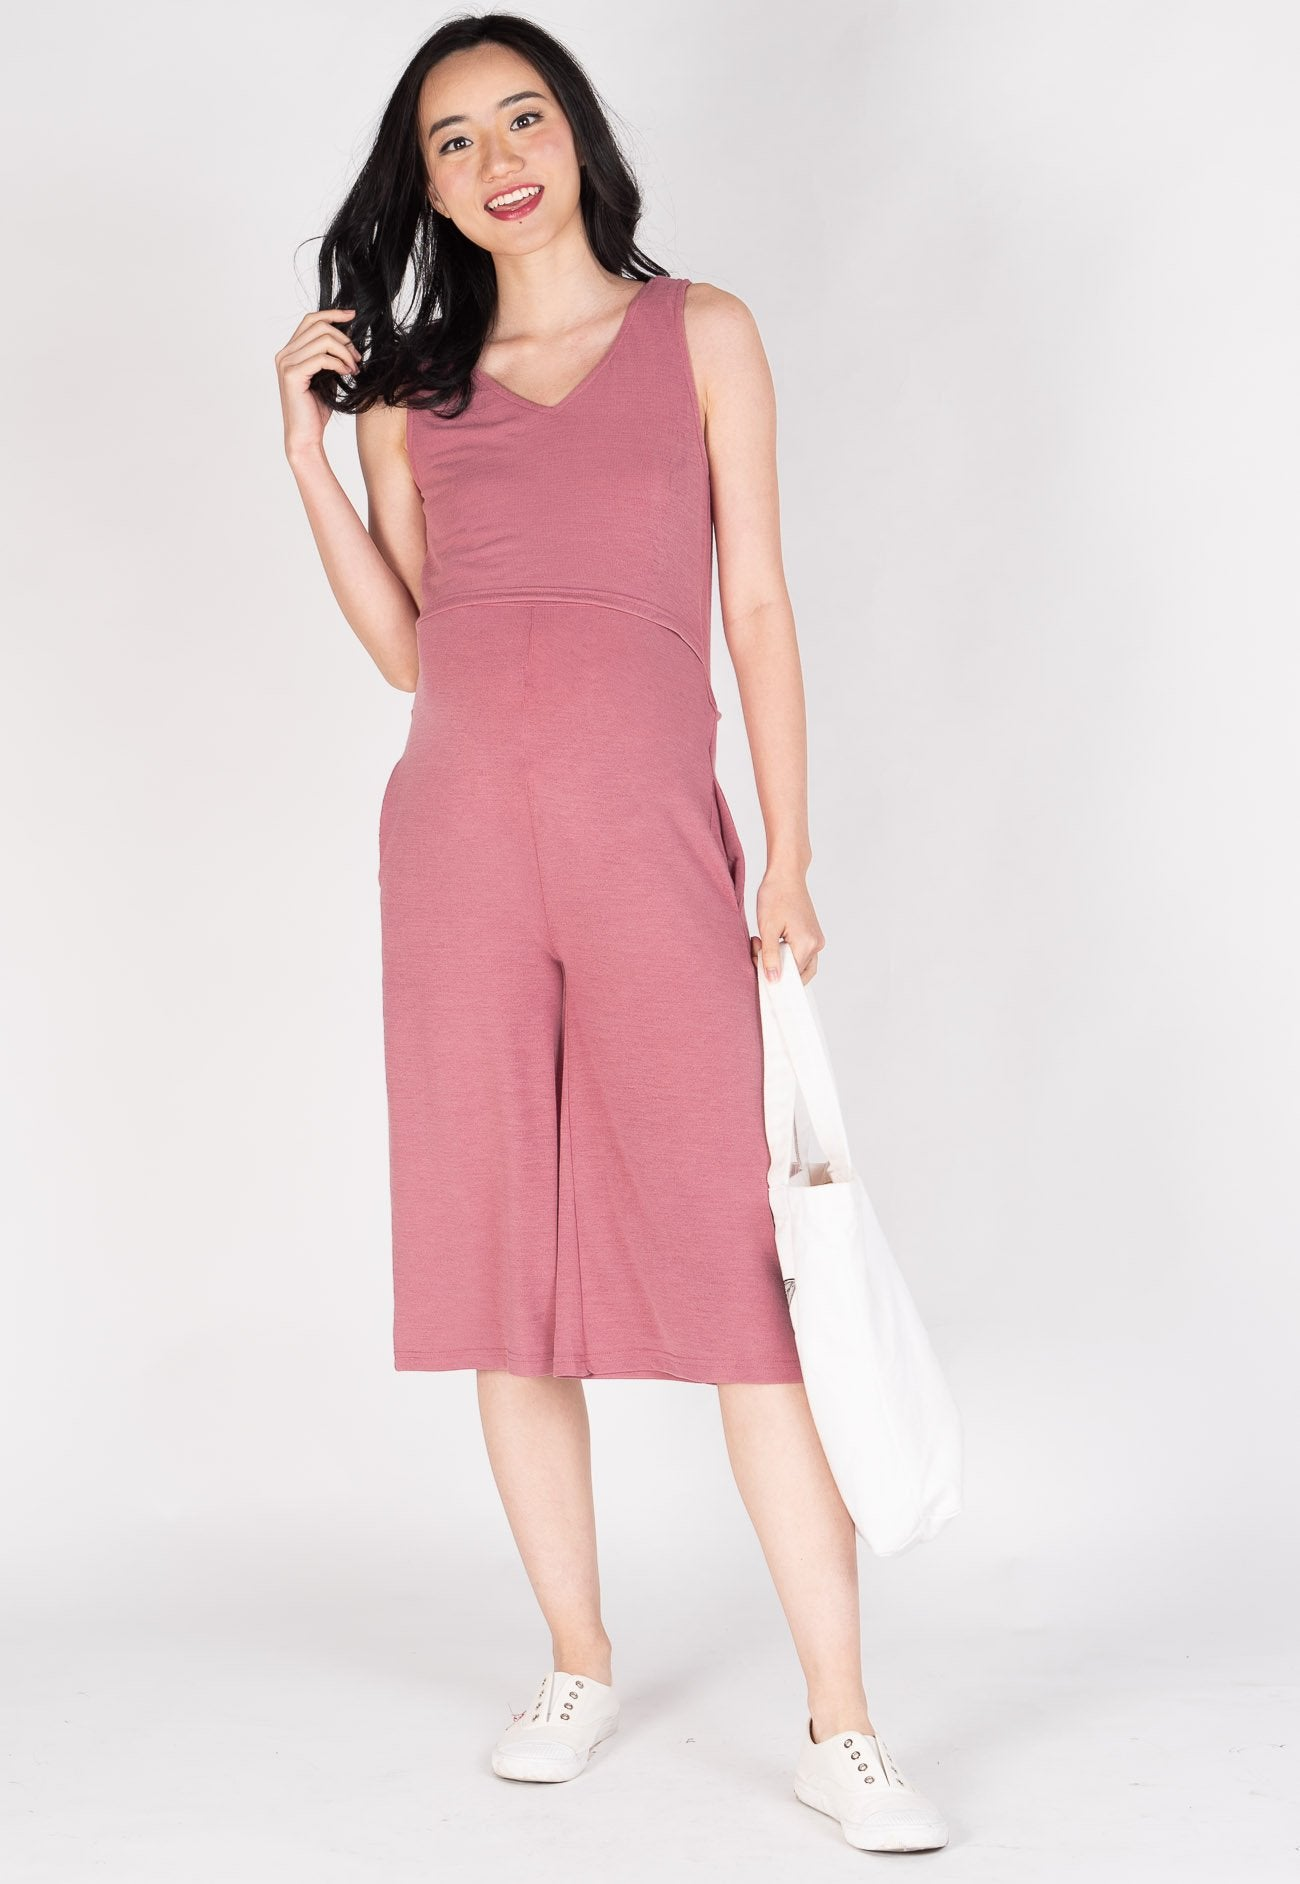 30b588693d65ba Carefree V Neck Nursing Jumpsuit in Pink by JumpEatCry - Maternity and  nursing wear